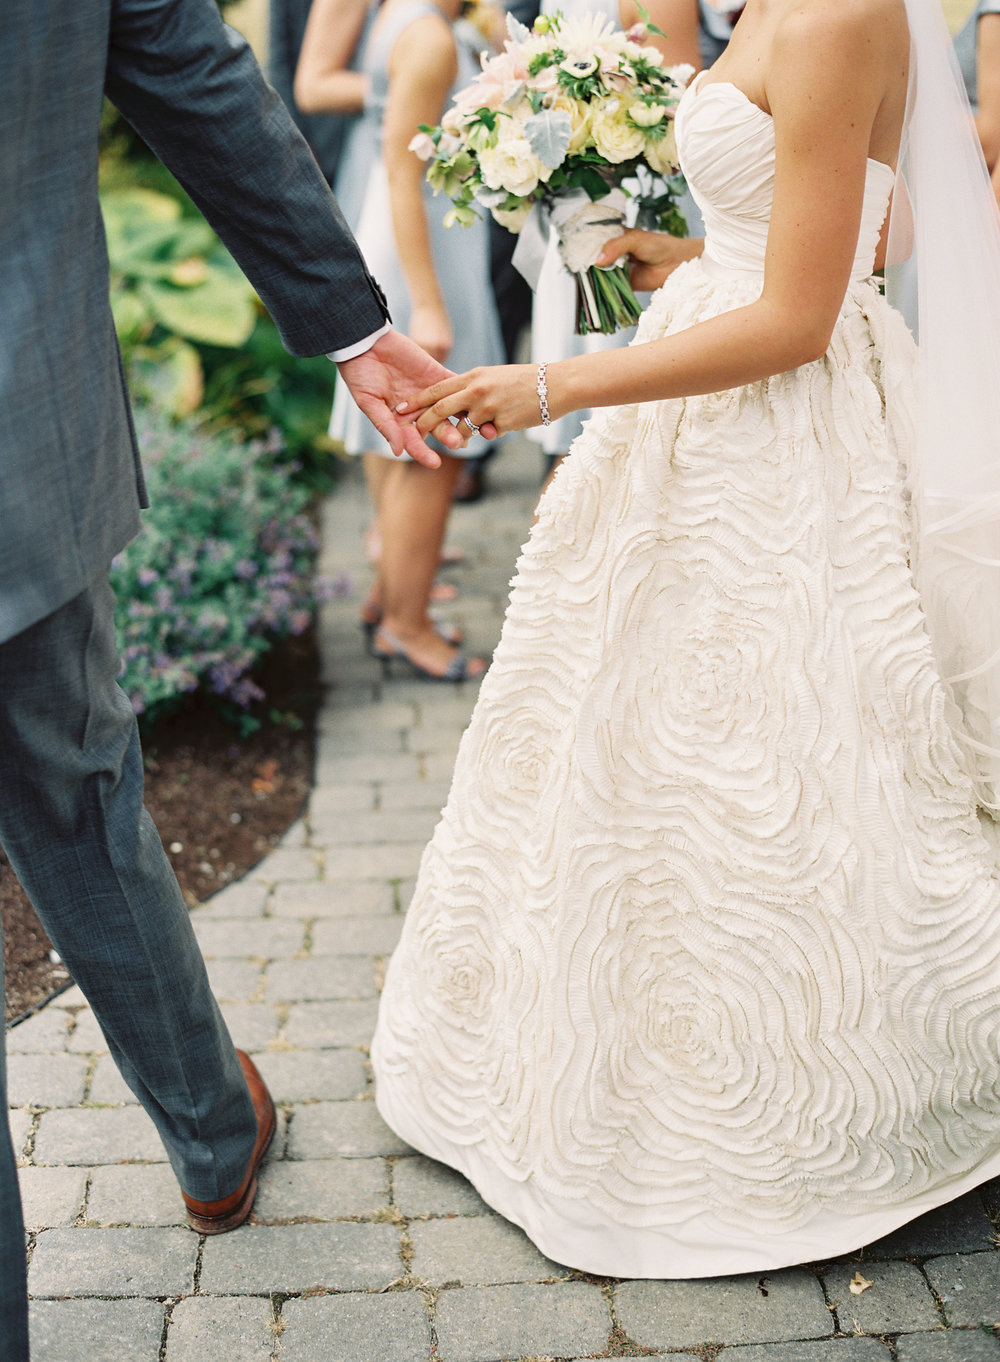 chebeague_island_inn_wedding_gabe_aceves015.JPG